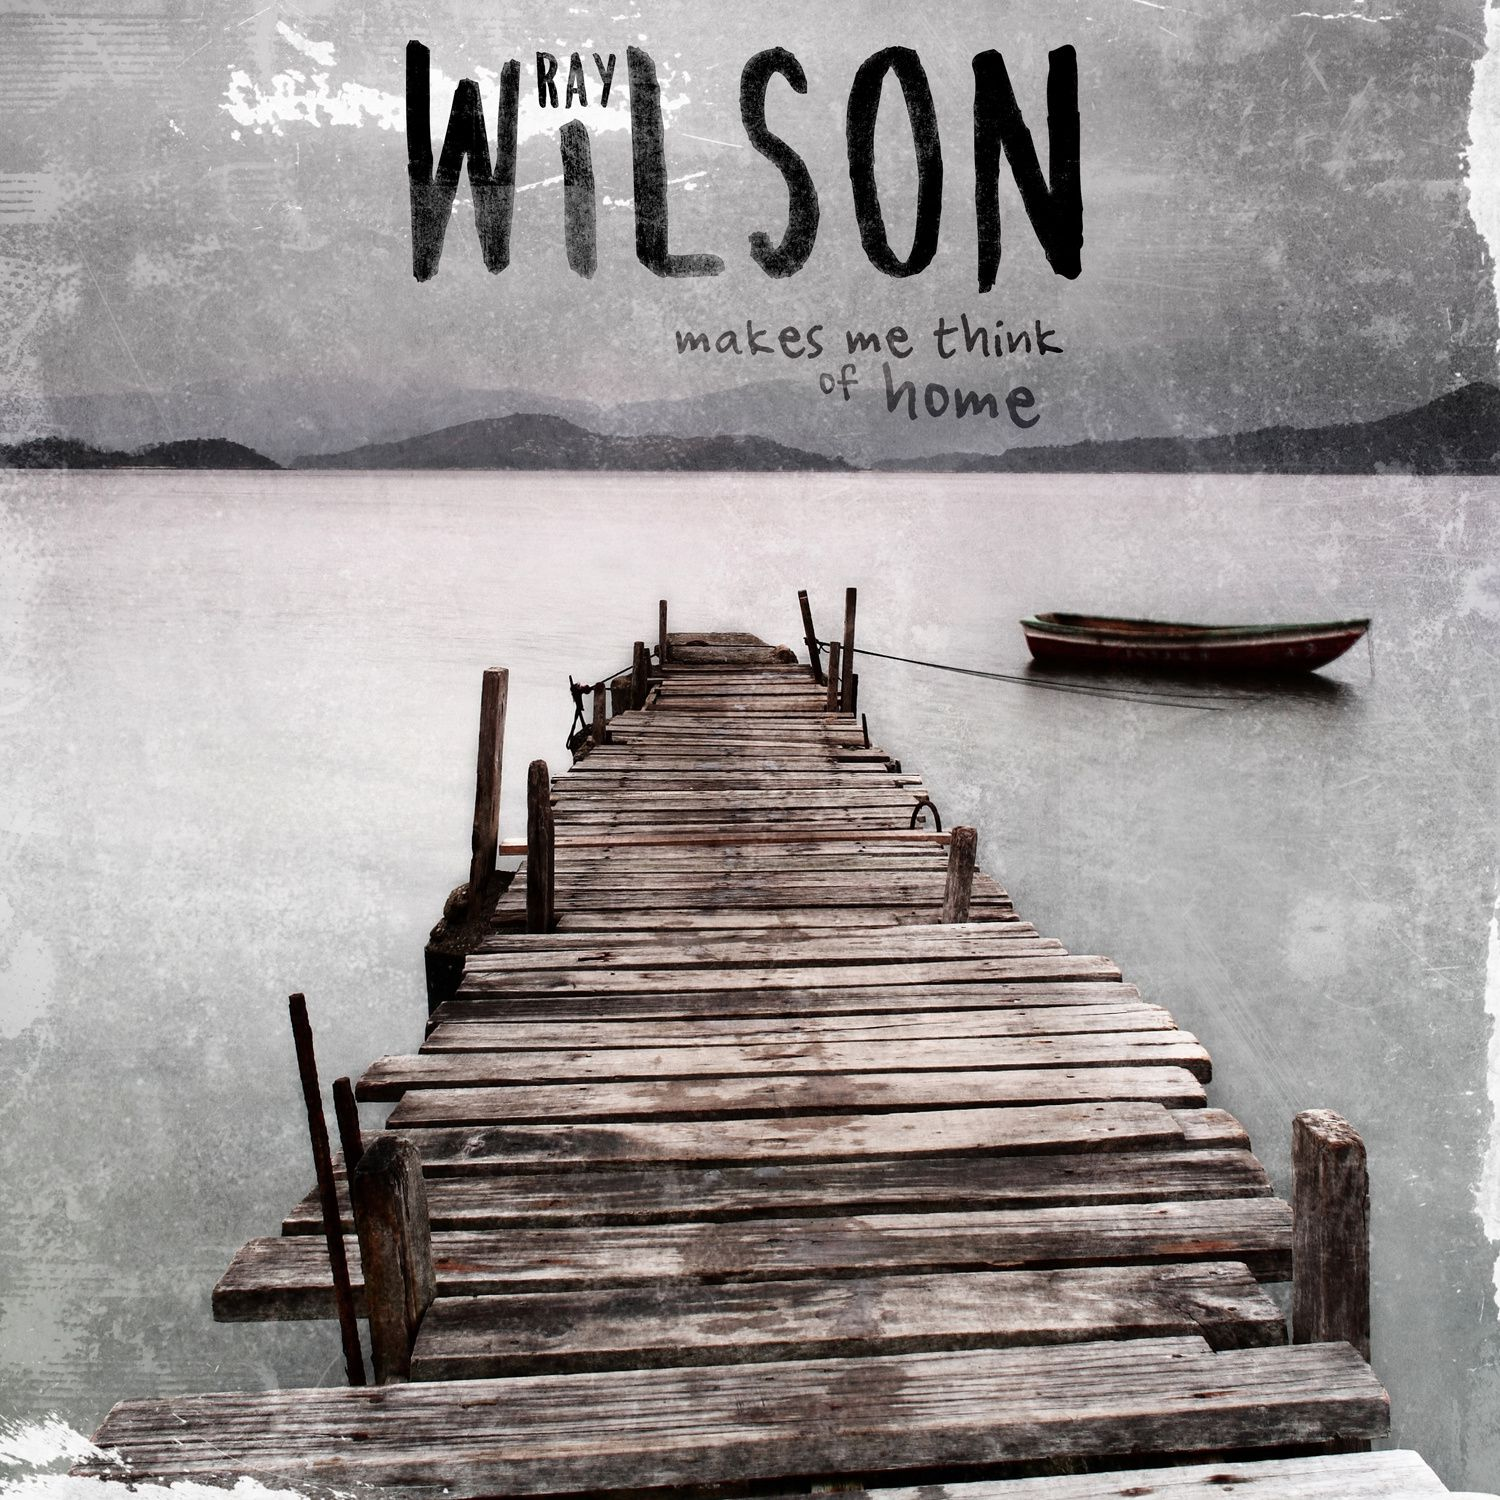 CD review RAY WILSON &quot&#x3B;Makes Me Think of Home&quot&#x3B;